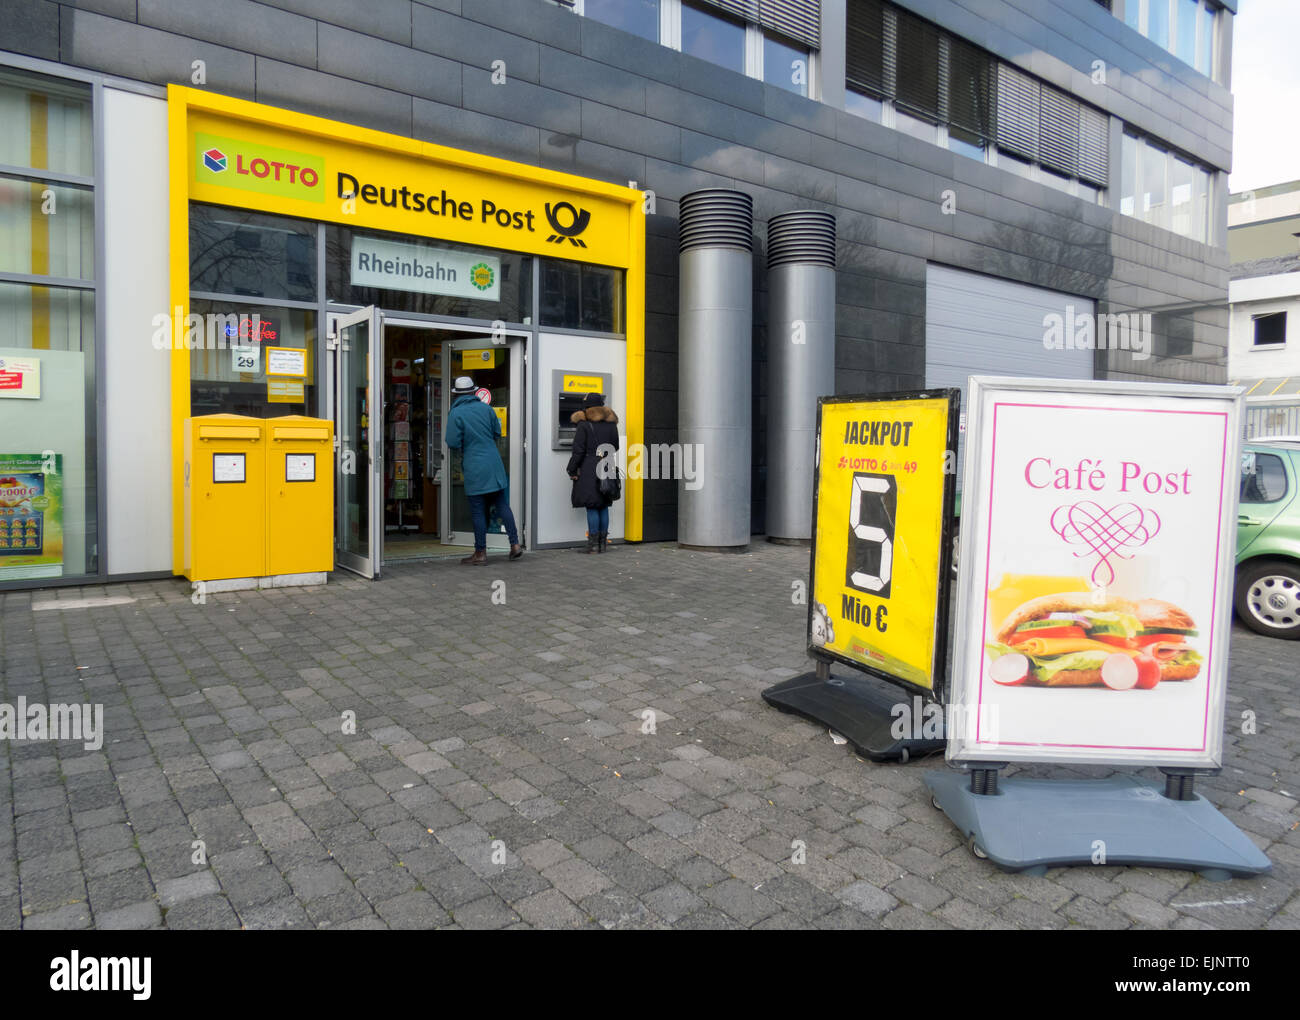 Deutsche Post Cod Lotterie